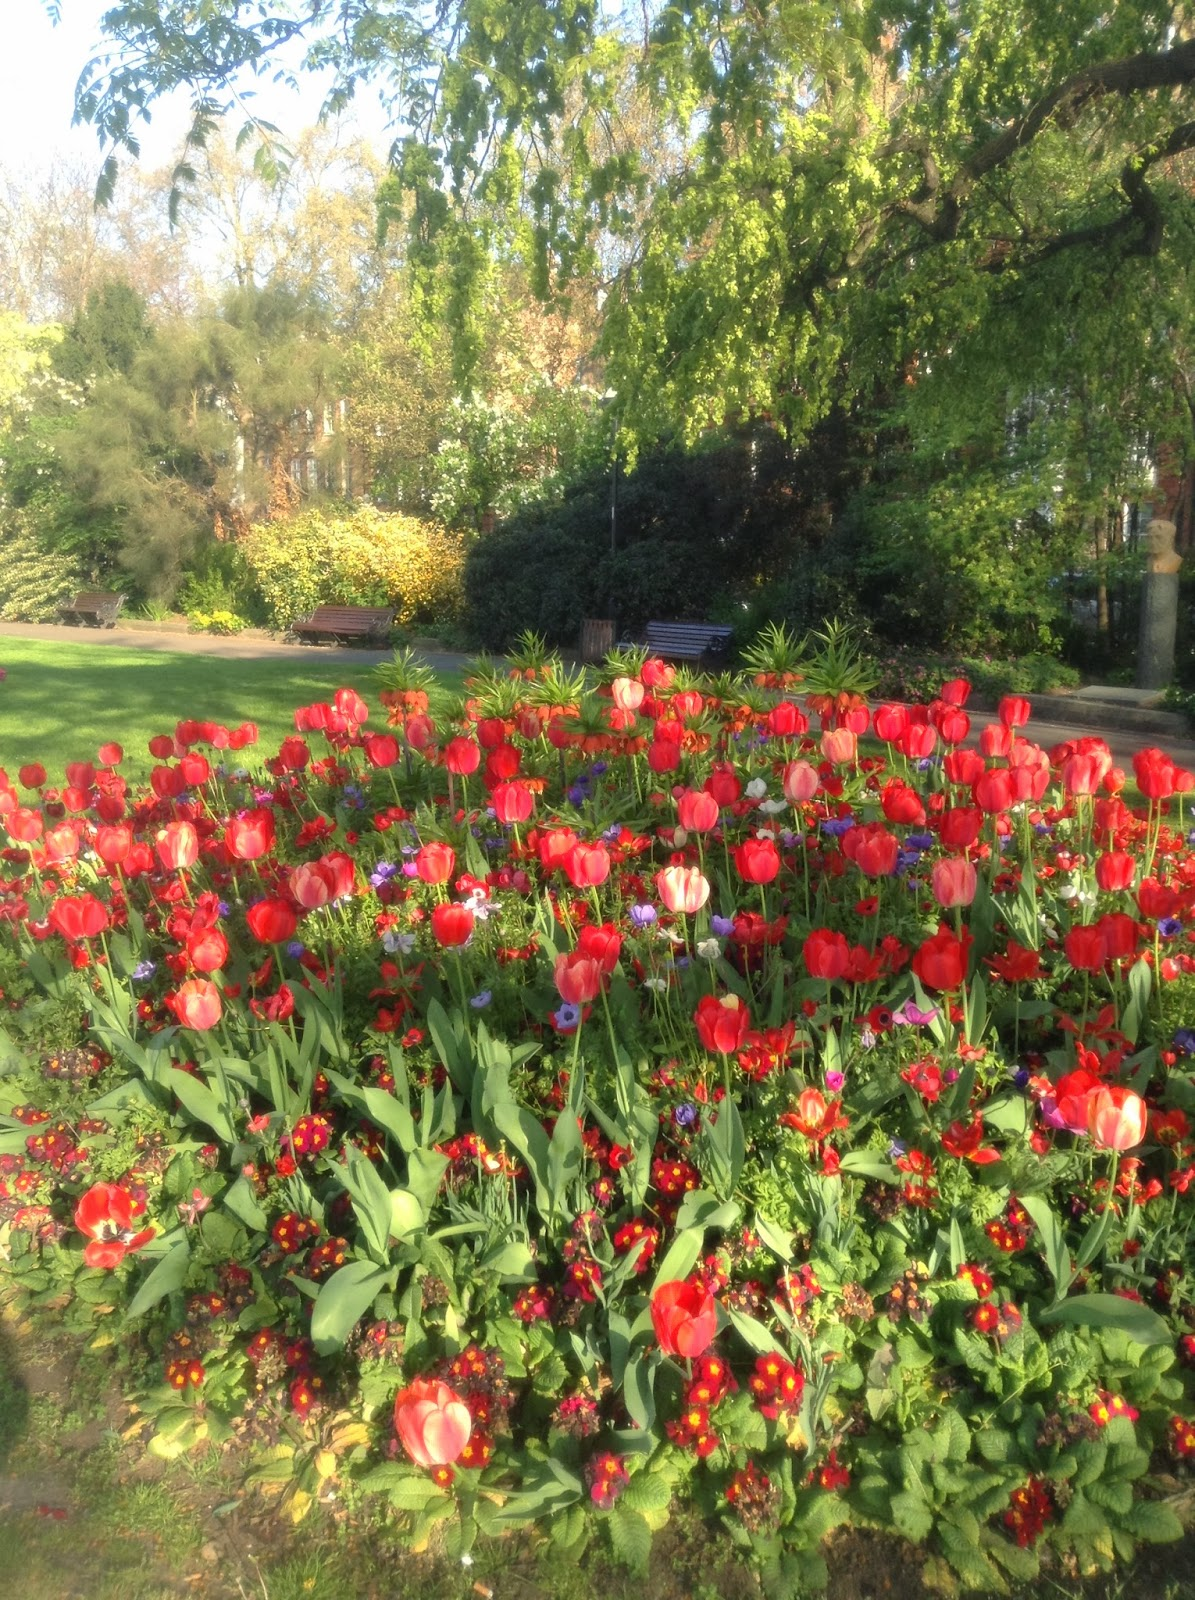 Tulipa , Anemone and Primula at Chelsea Embankment, Photo by Mercurelli's Garden Design